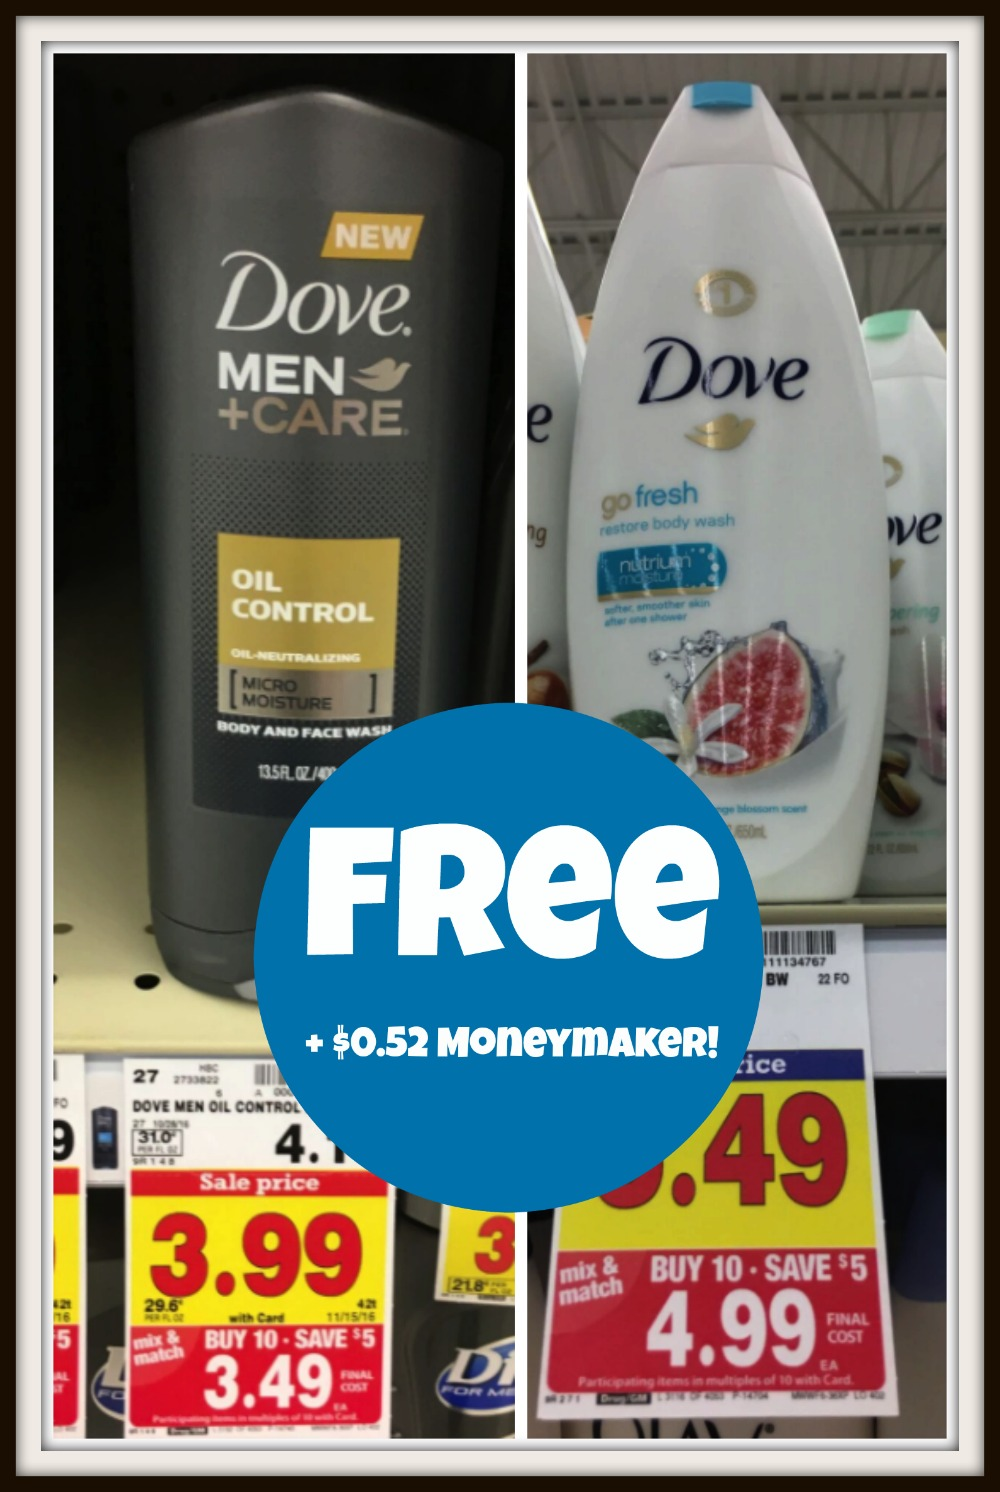 image relating to Dove Soap Printable Coupons titled Refreshing $2 Dove Human body Clean Coupon codes \u003d Absolutely free at Kroger (furthermore $0.52